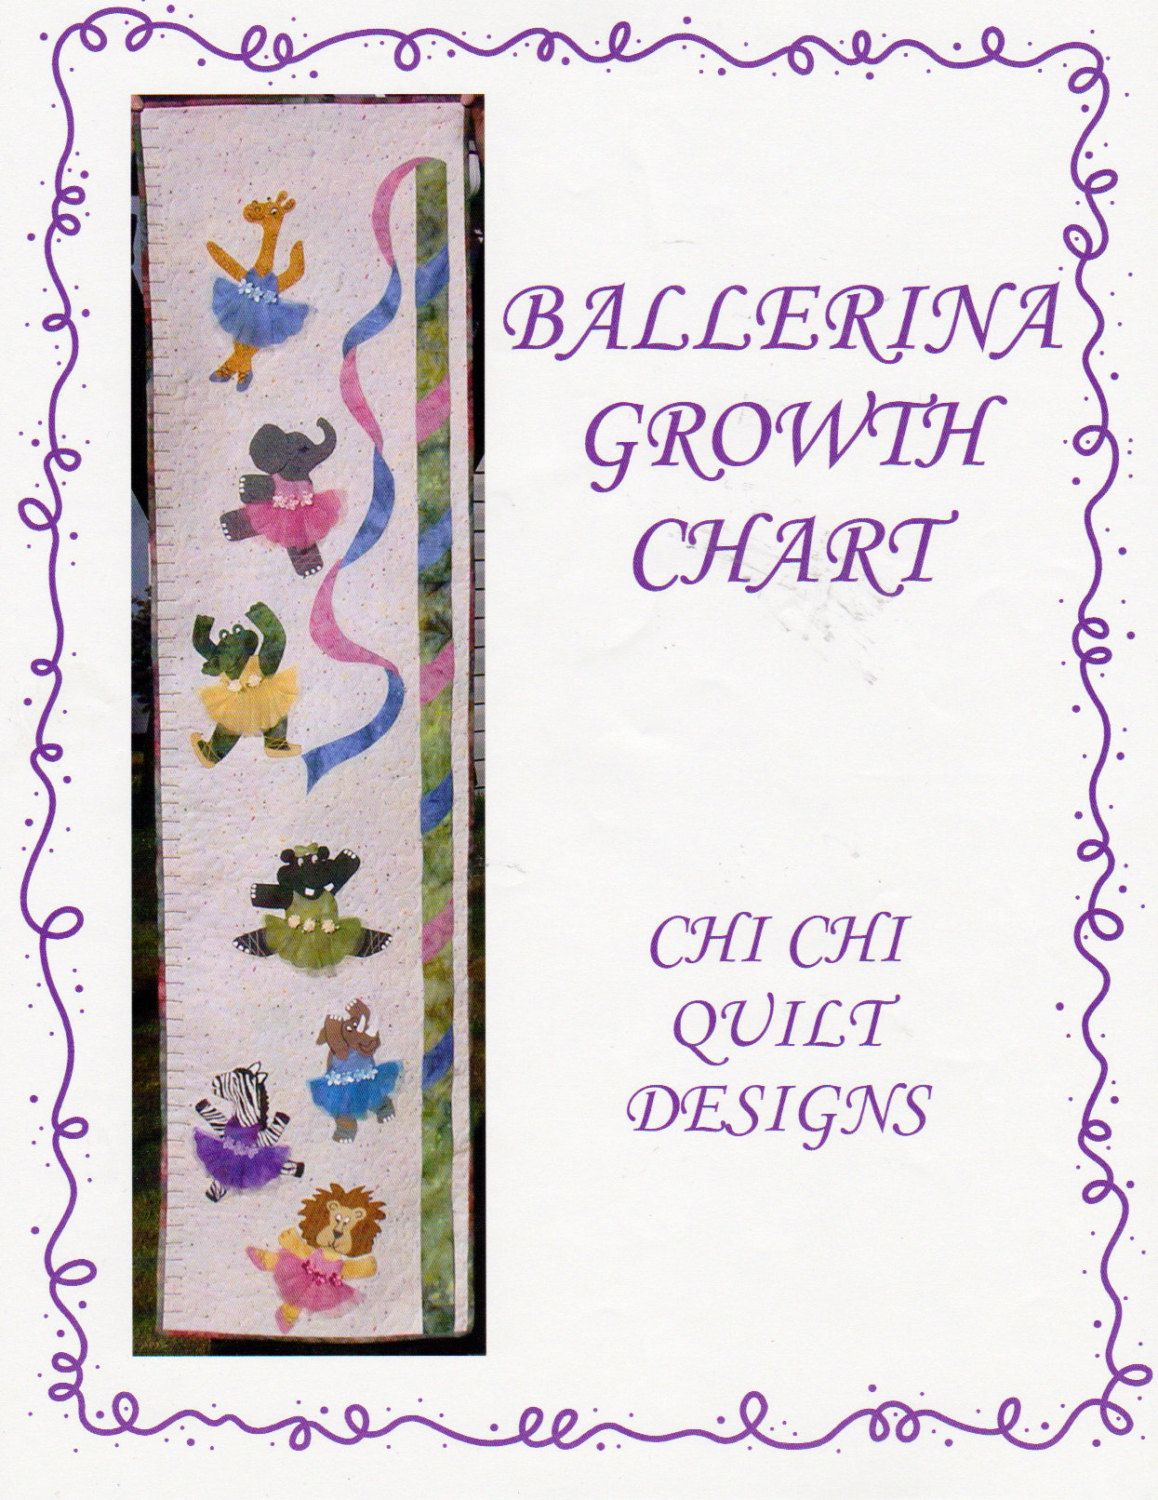 Appliqued Tutus On Animals Quilted Ballerina Growth Chart Pattern